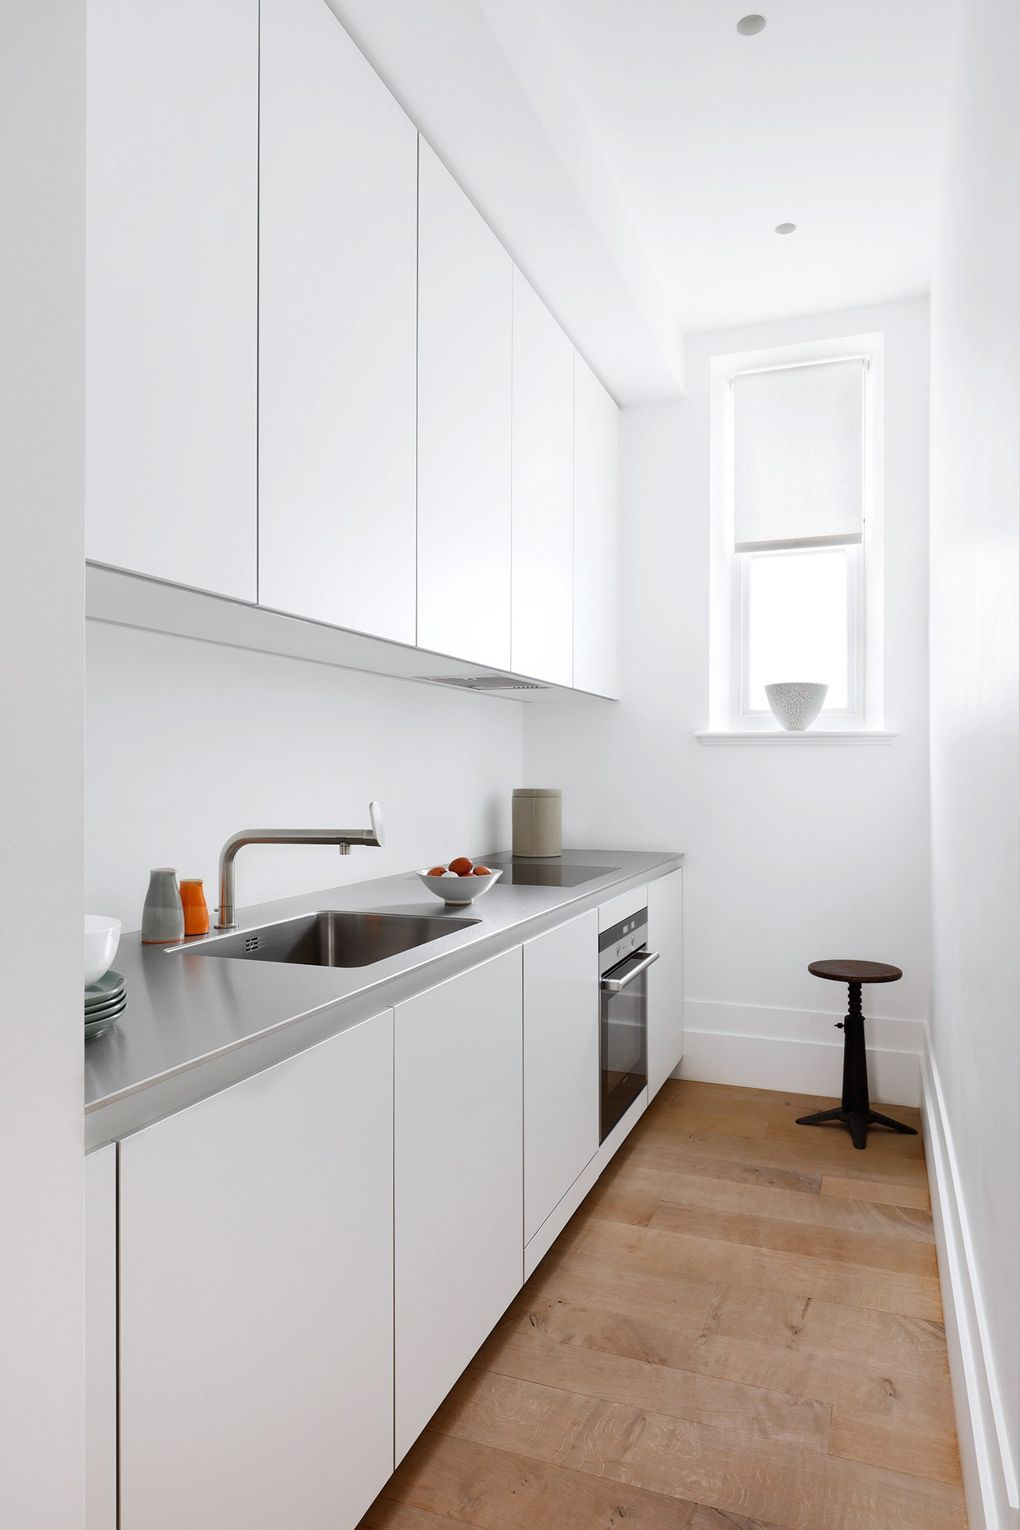 The design of the kitchen continues the feeling of quiet simplicity ...